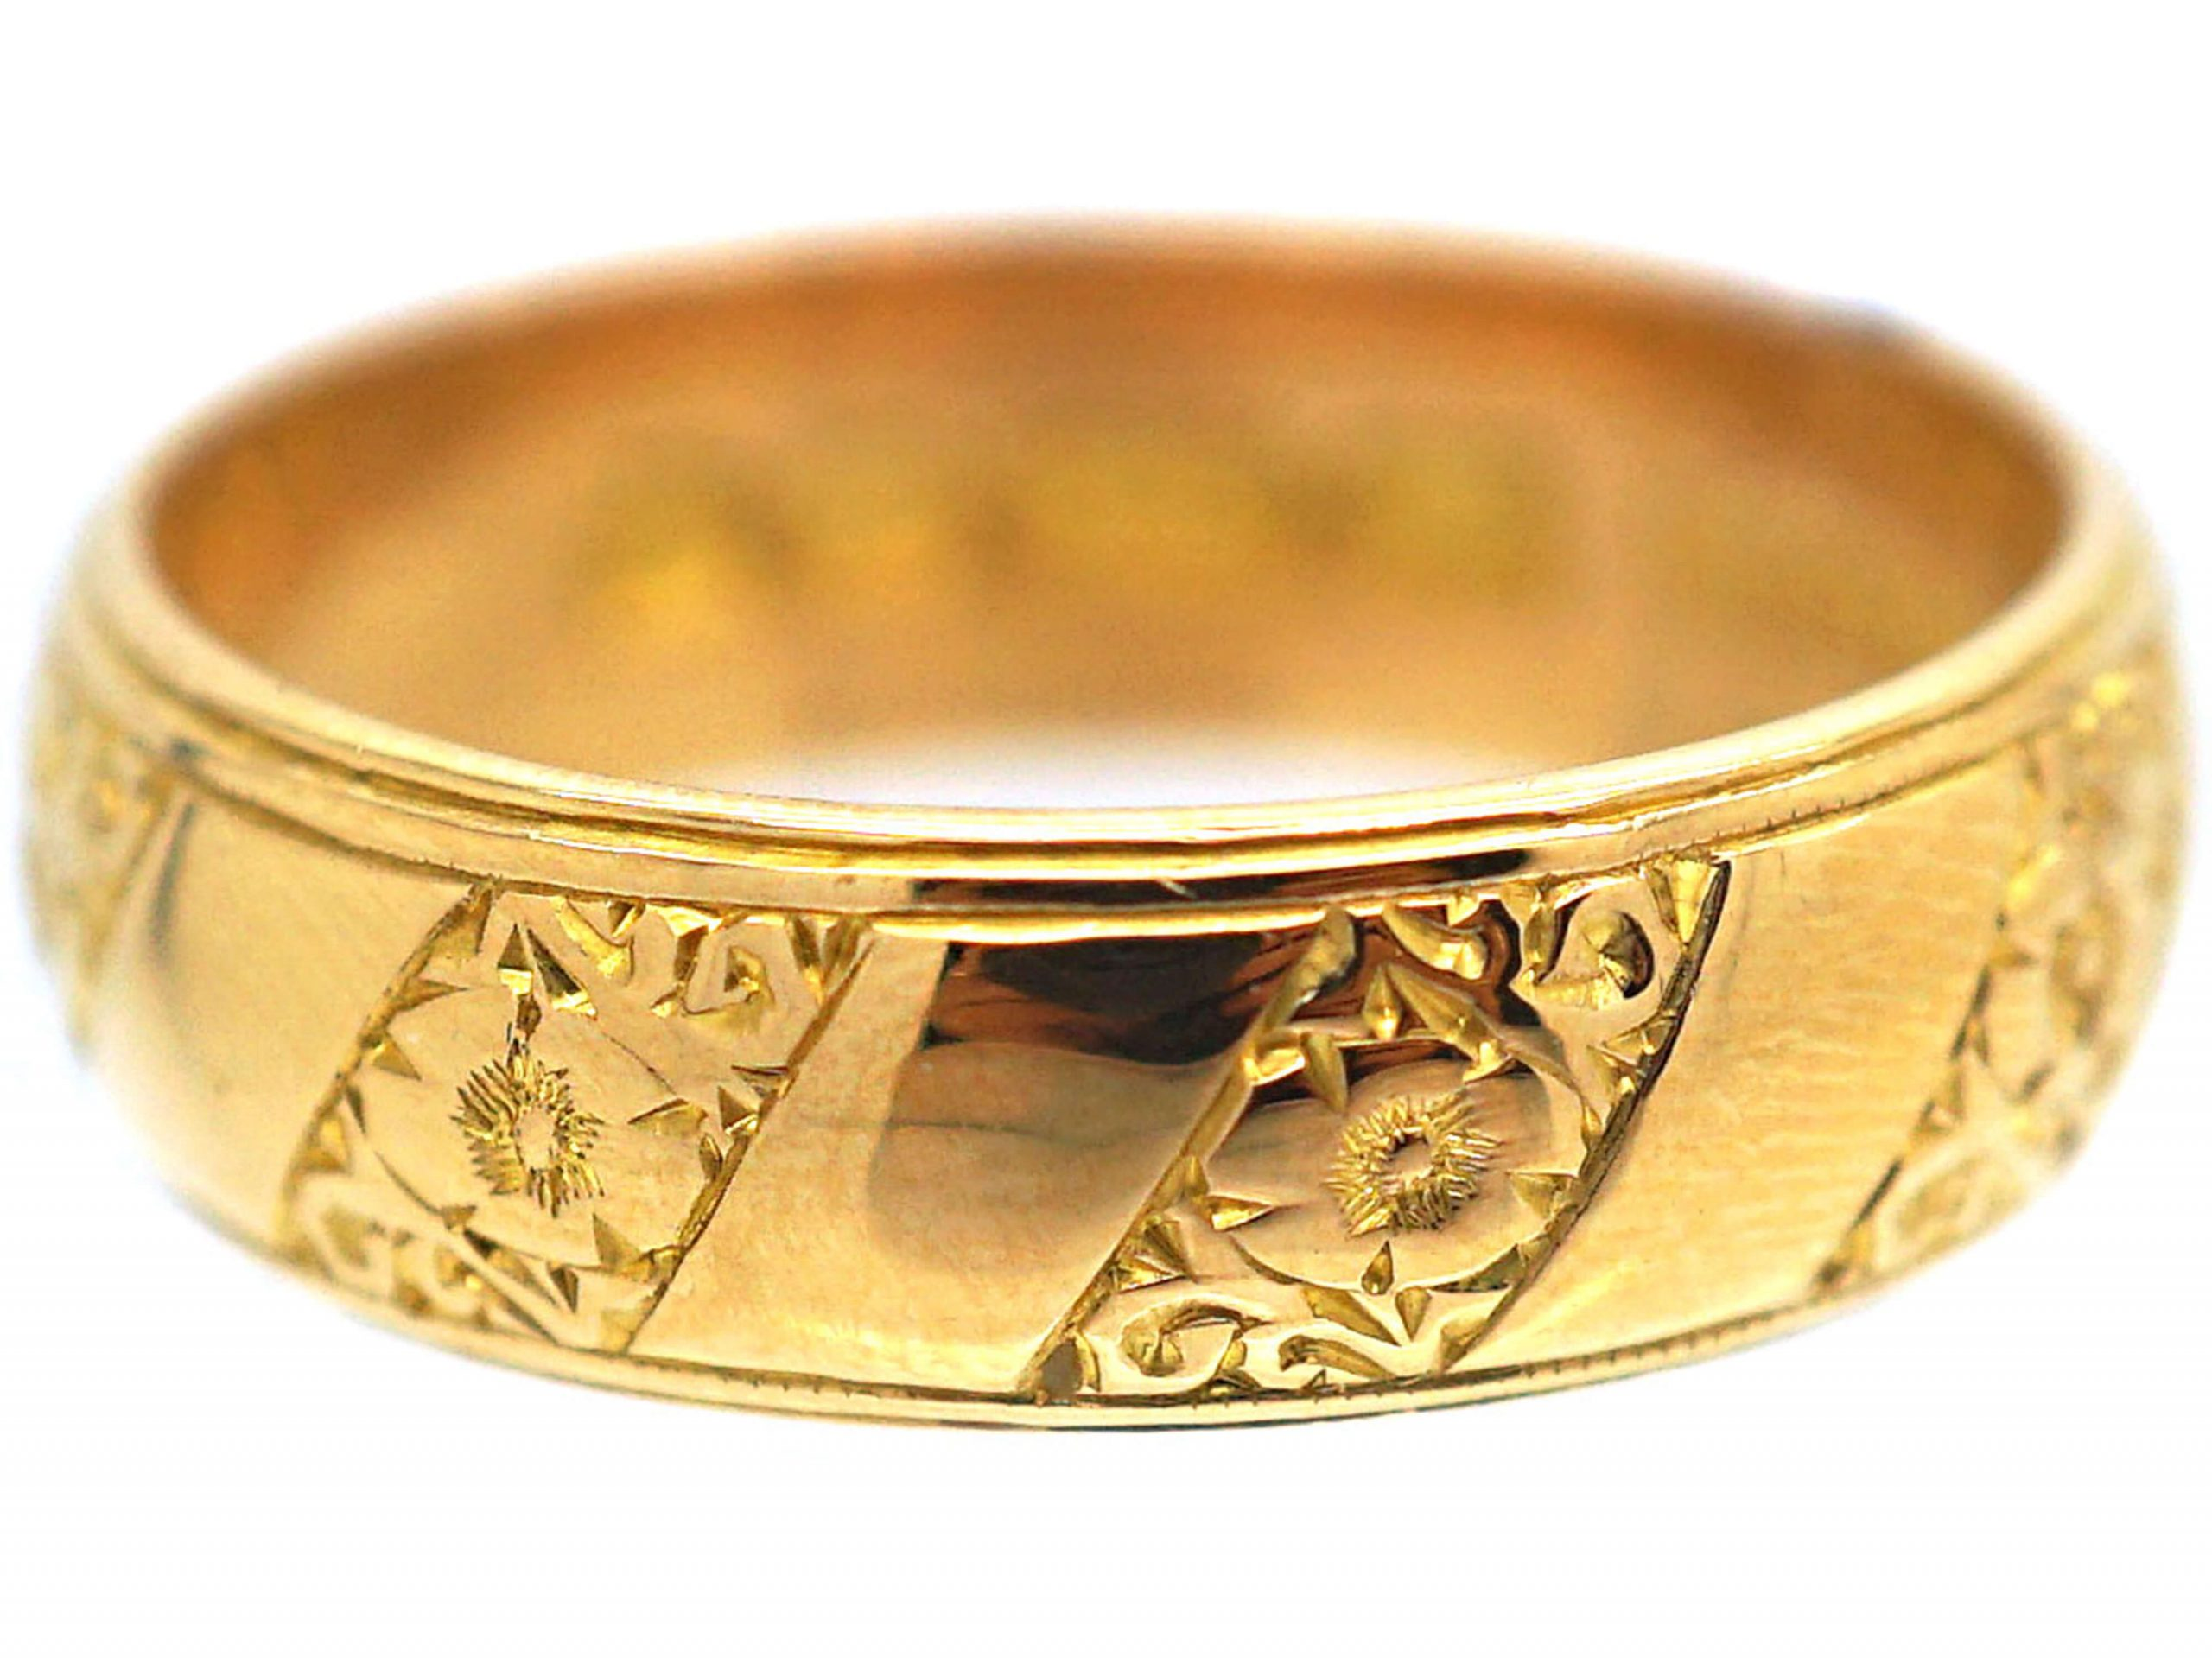 22ct Gold Ring with Decorated Slanting Bands